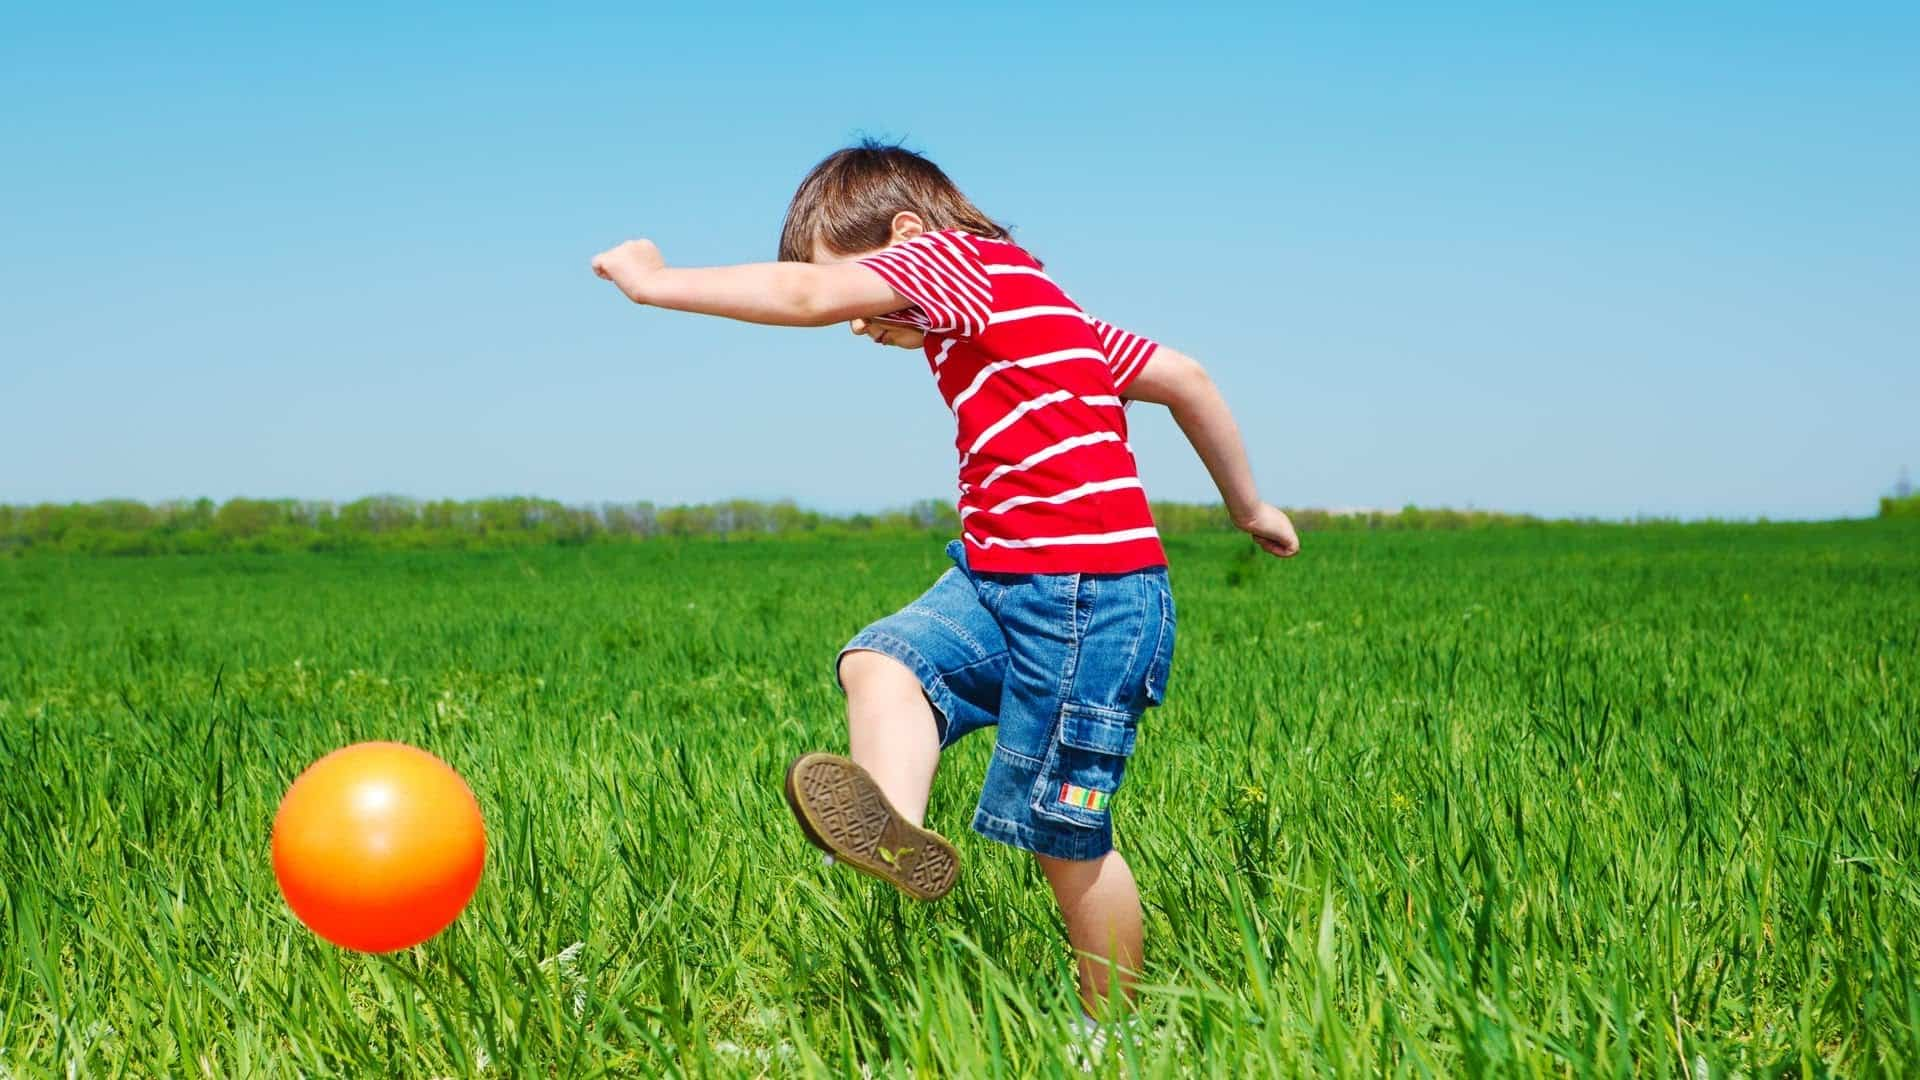 Know more about your child's gross motor skills development?